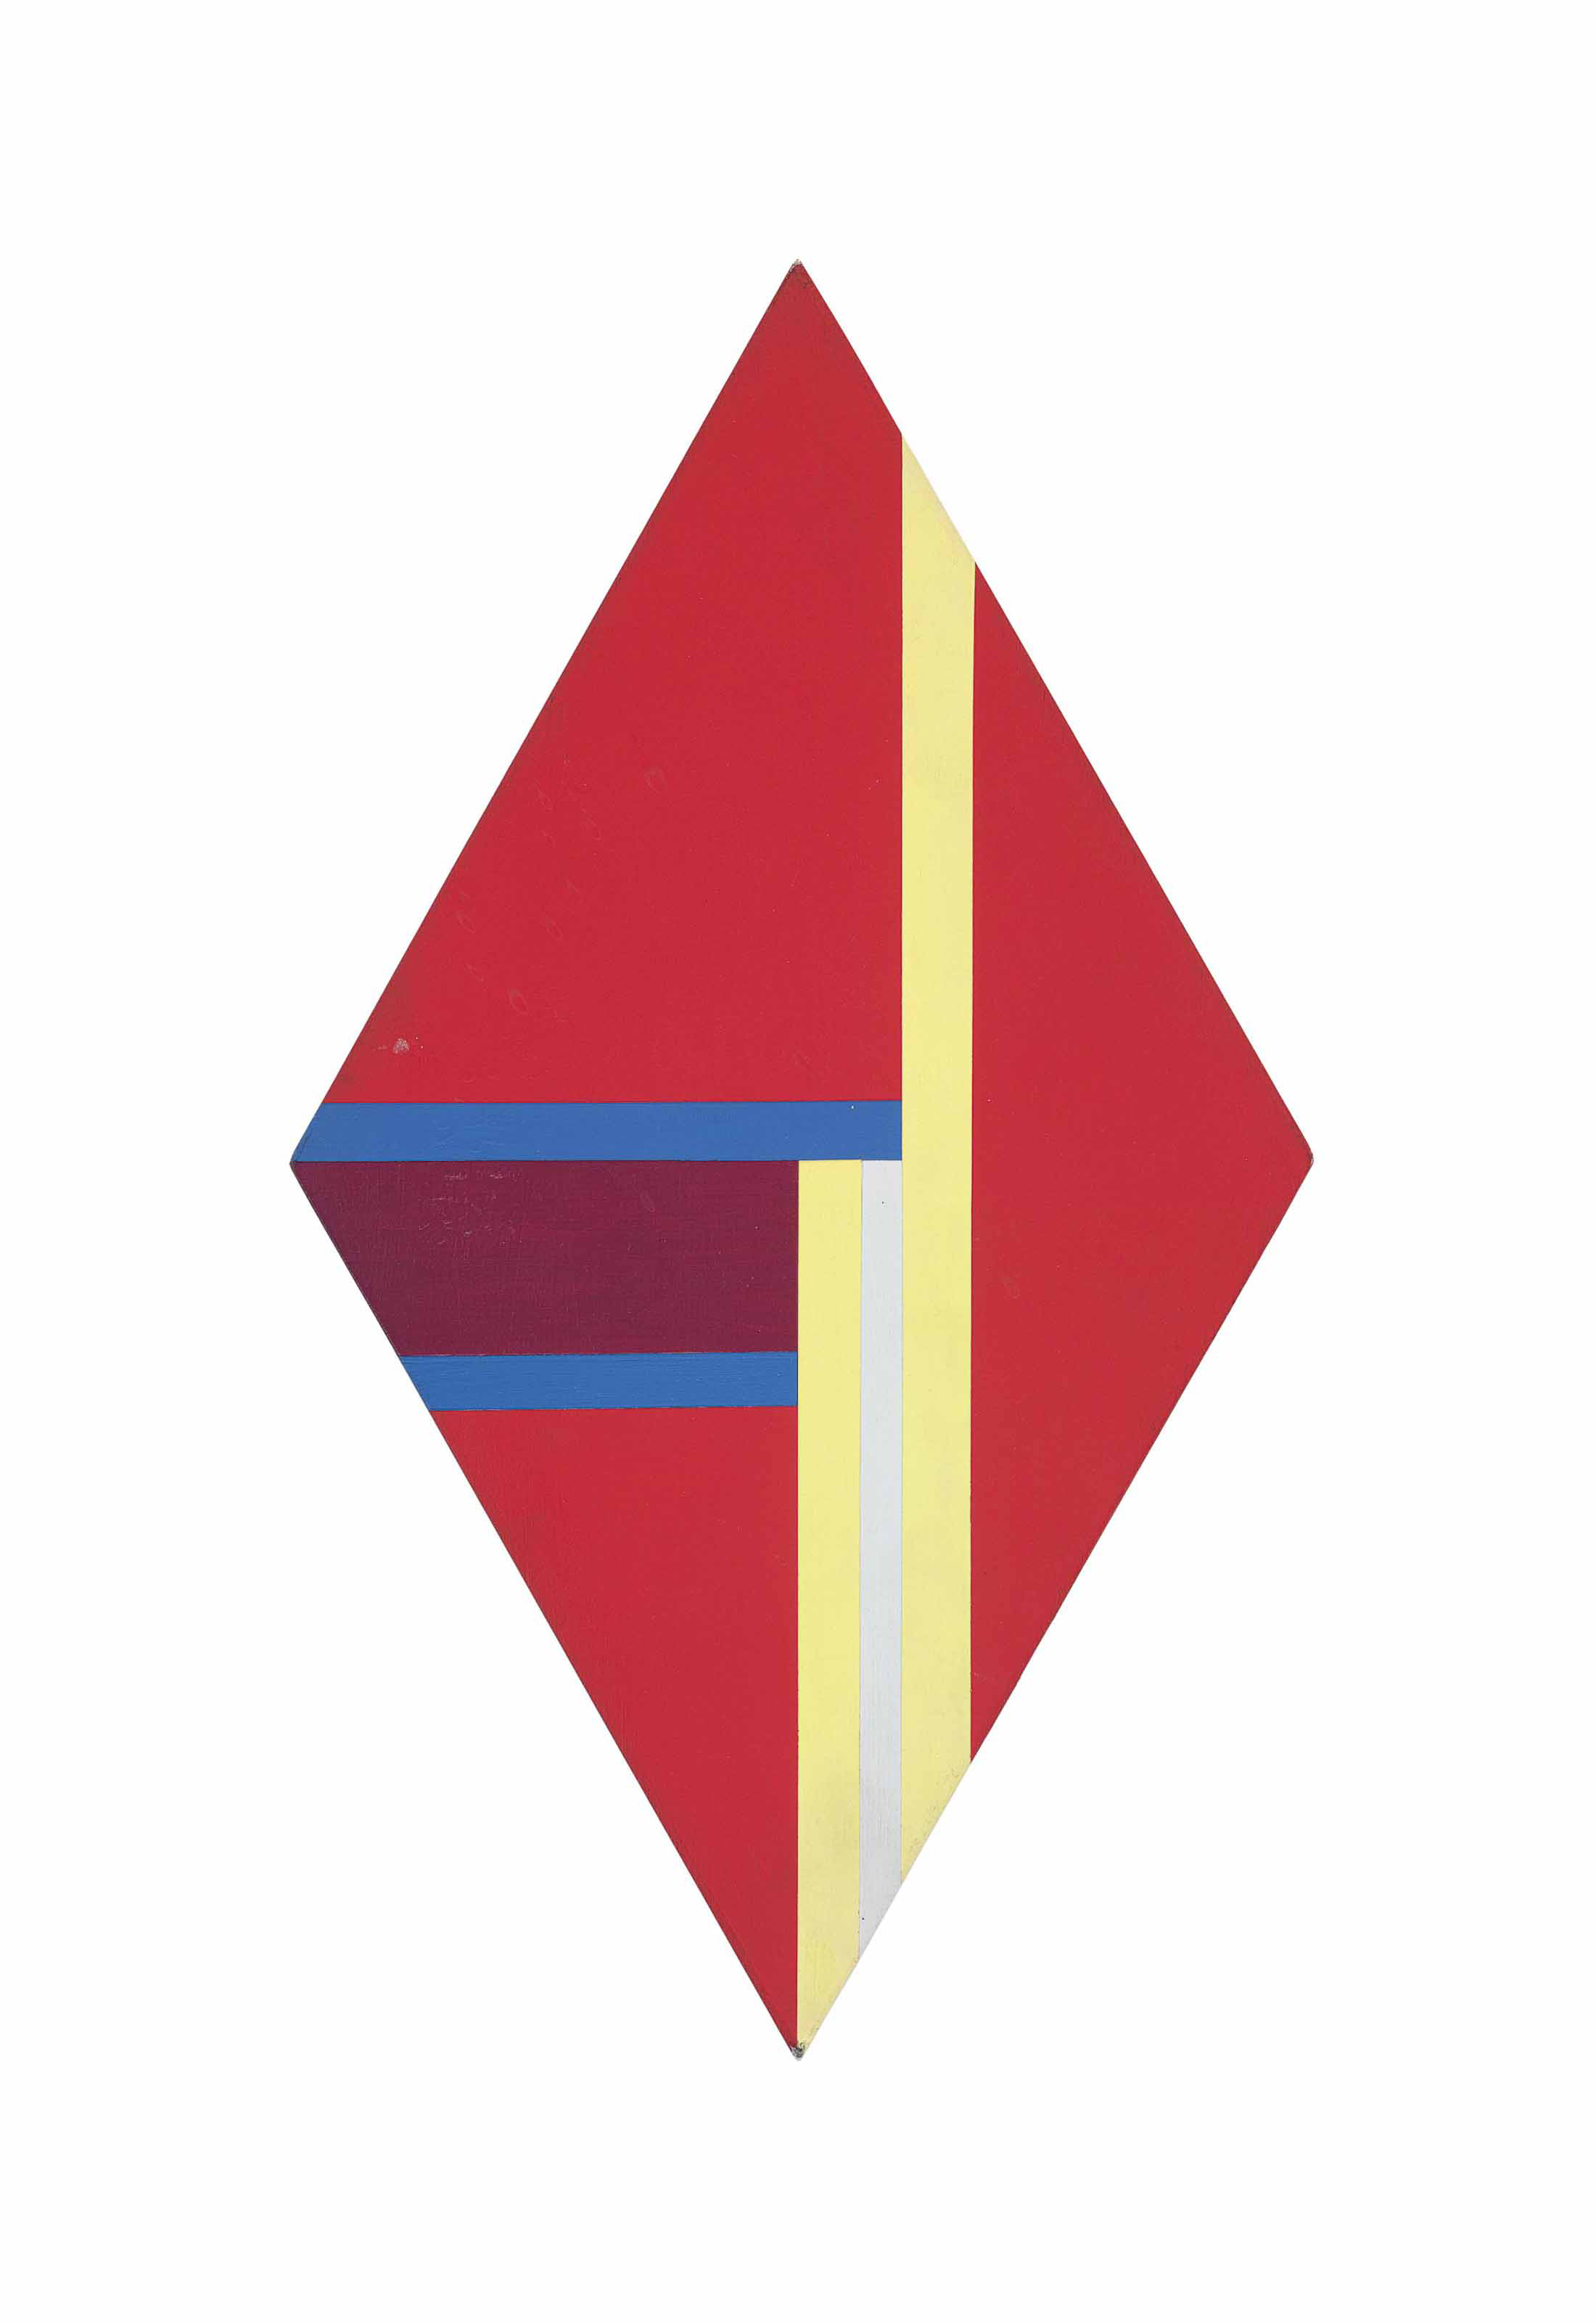 Rhomb in Red, Yellow and Blue